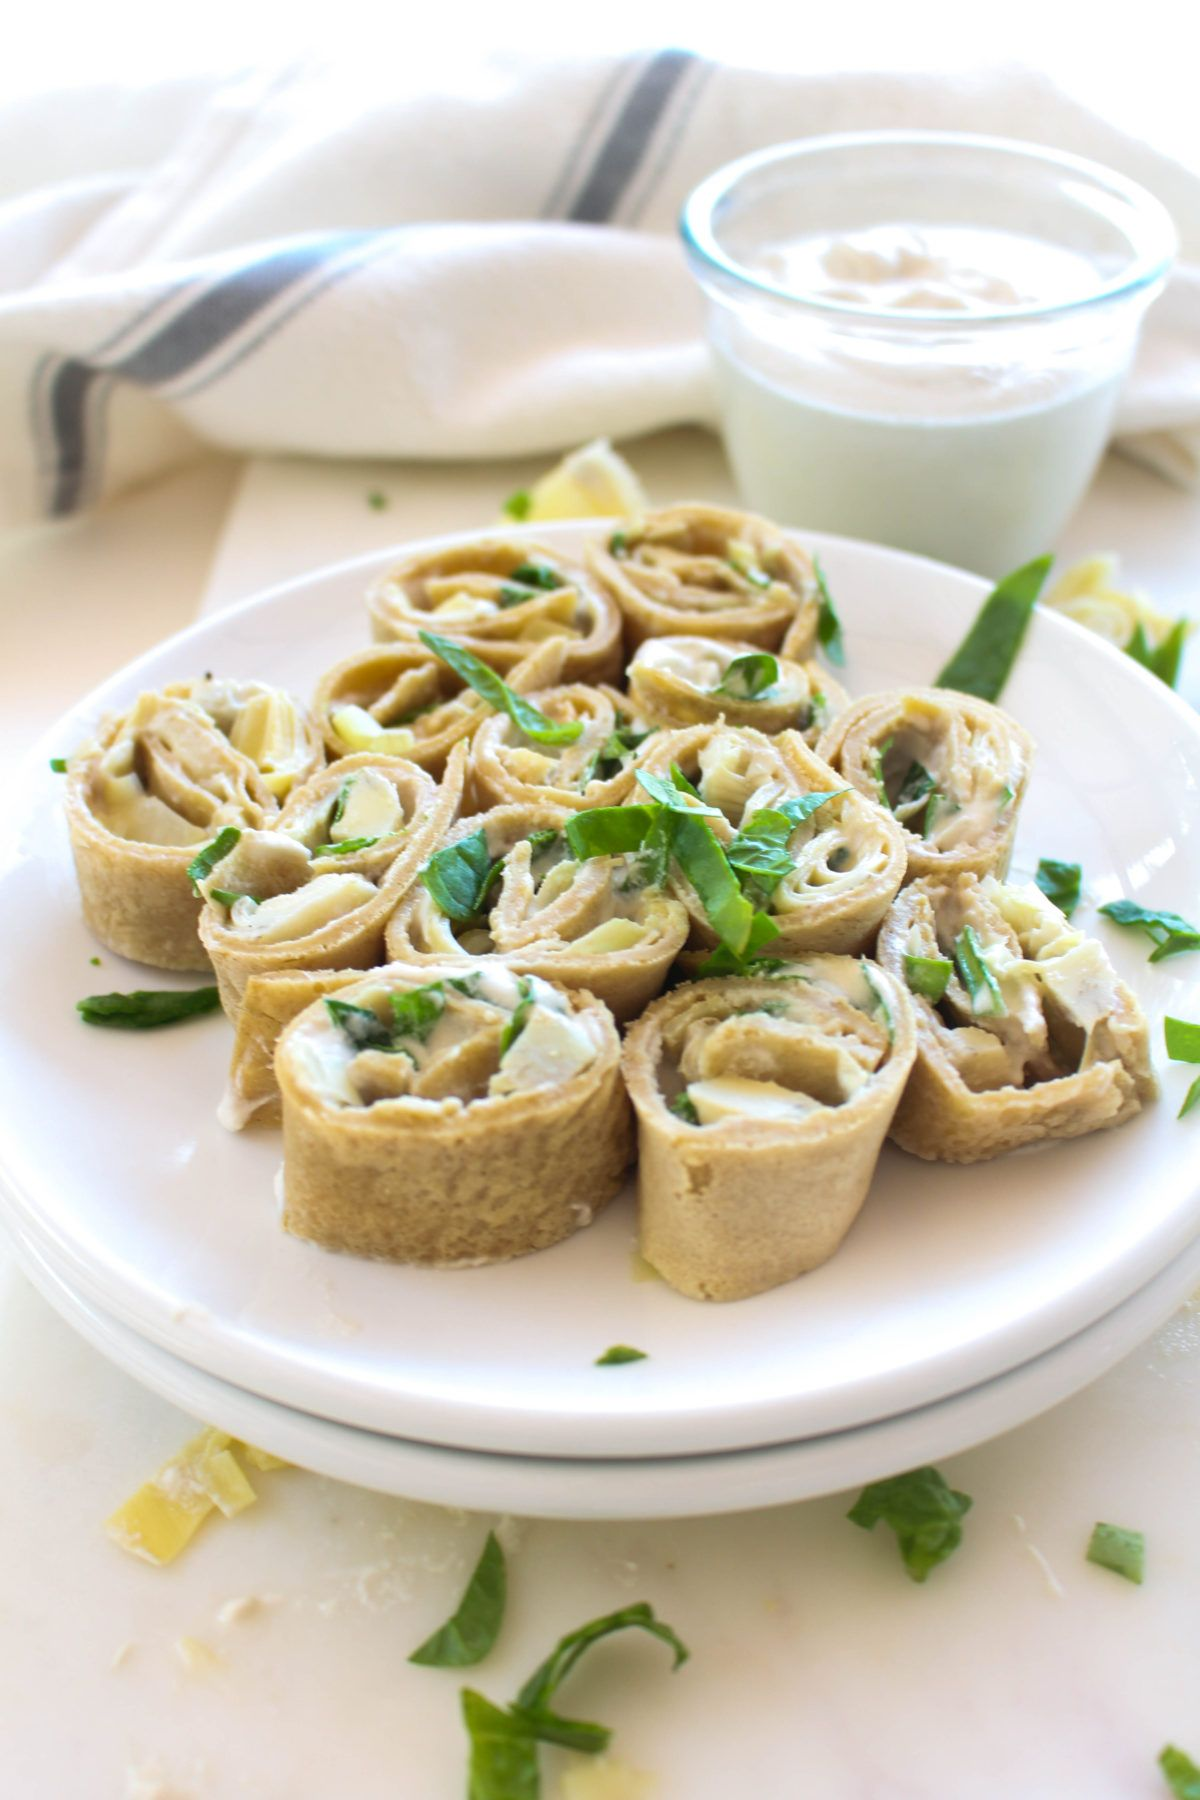 Spinach artichoke pinwheels roll and serve